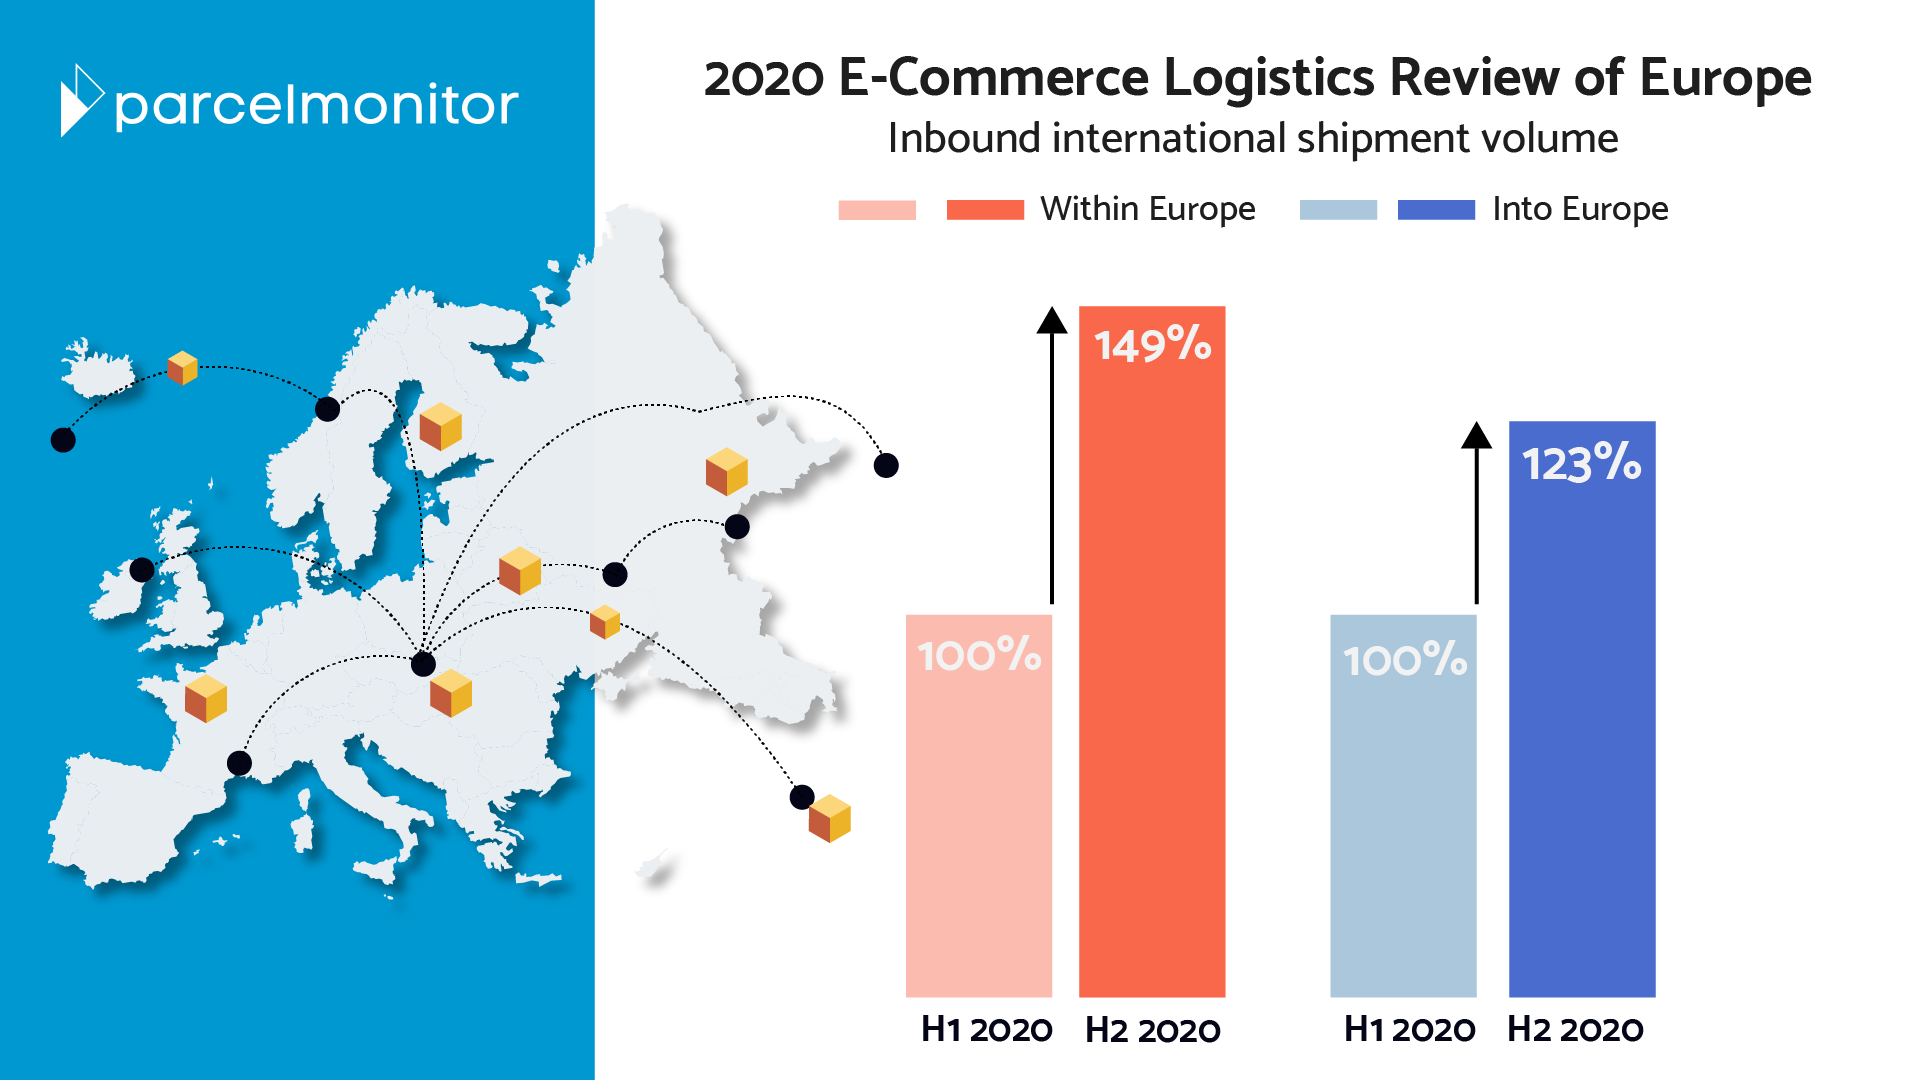 2020 E-Commerce Logistics Review of Europe